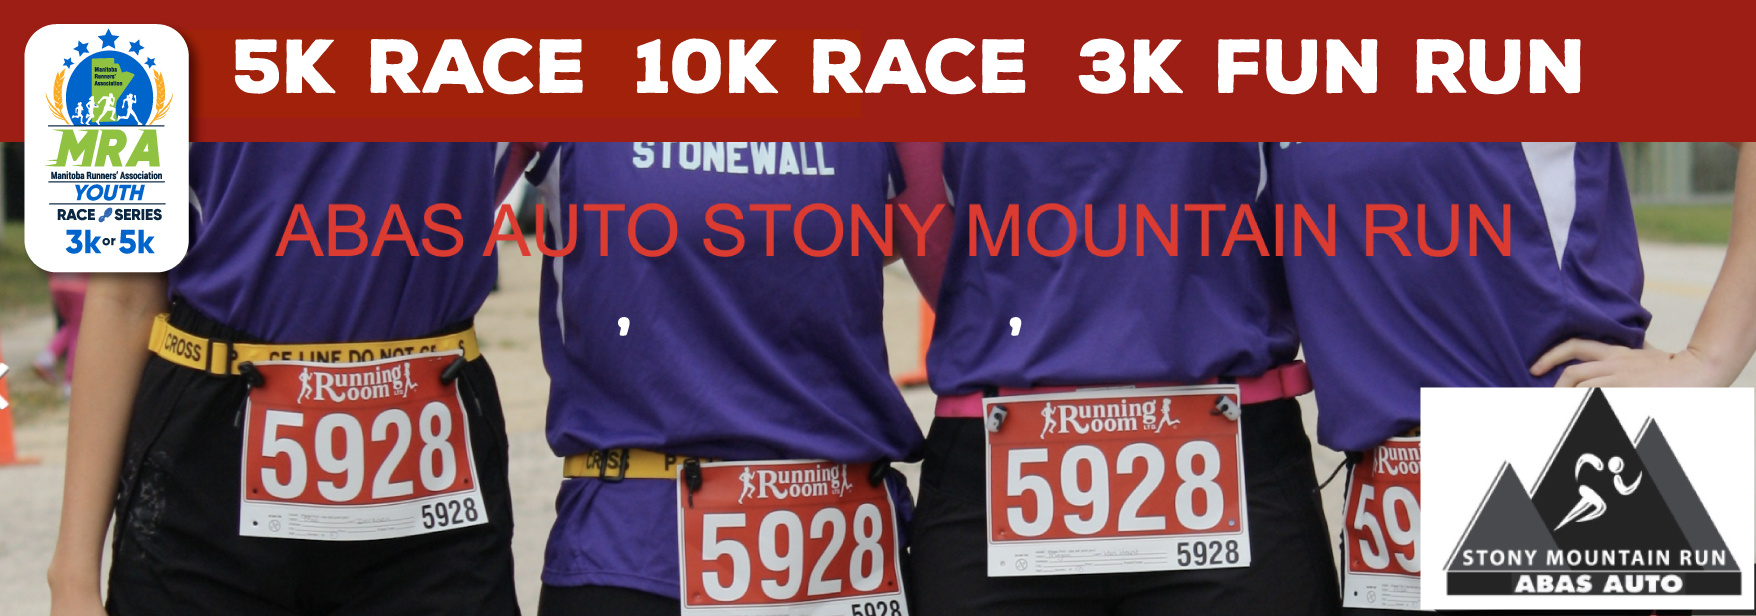 Abas Auto Stony Mountain Run